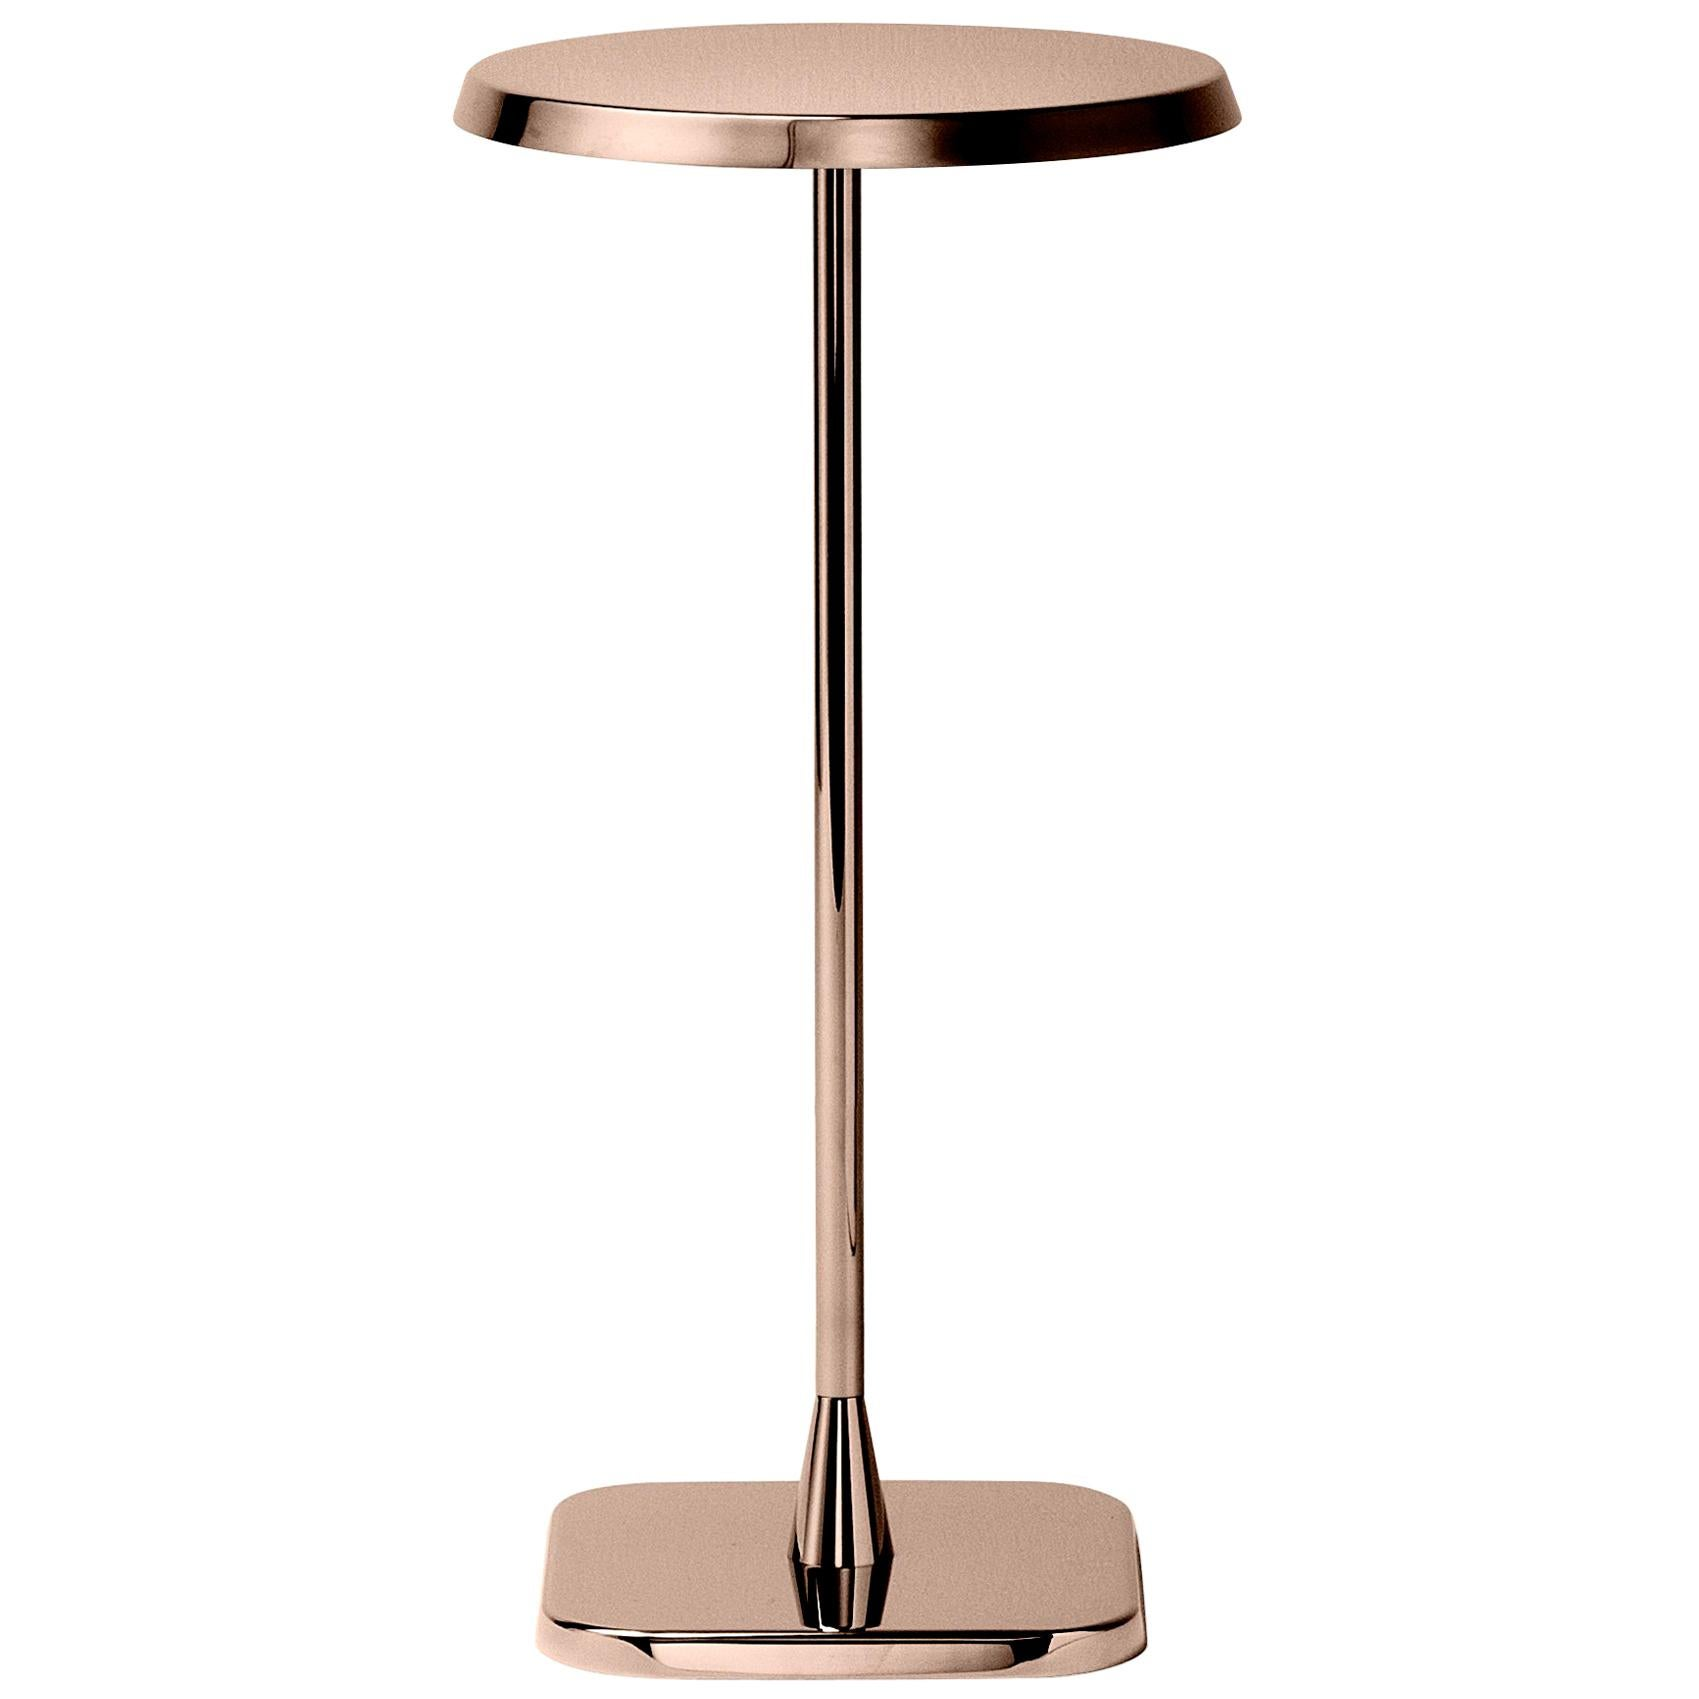 Ghidini 1961 Opera Small Round Table in Stainless Steel by Richard Hutten